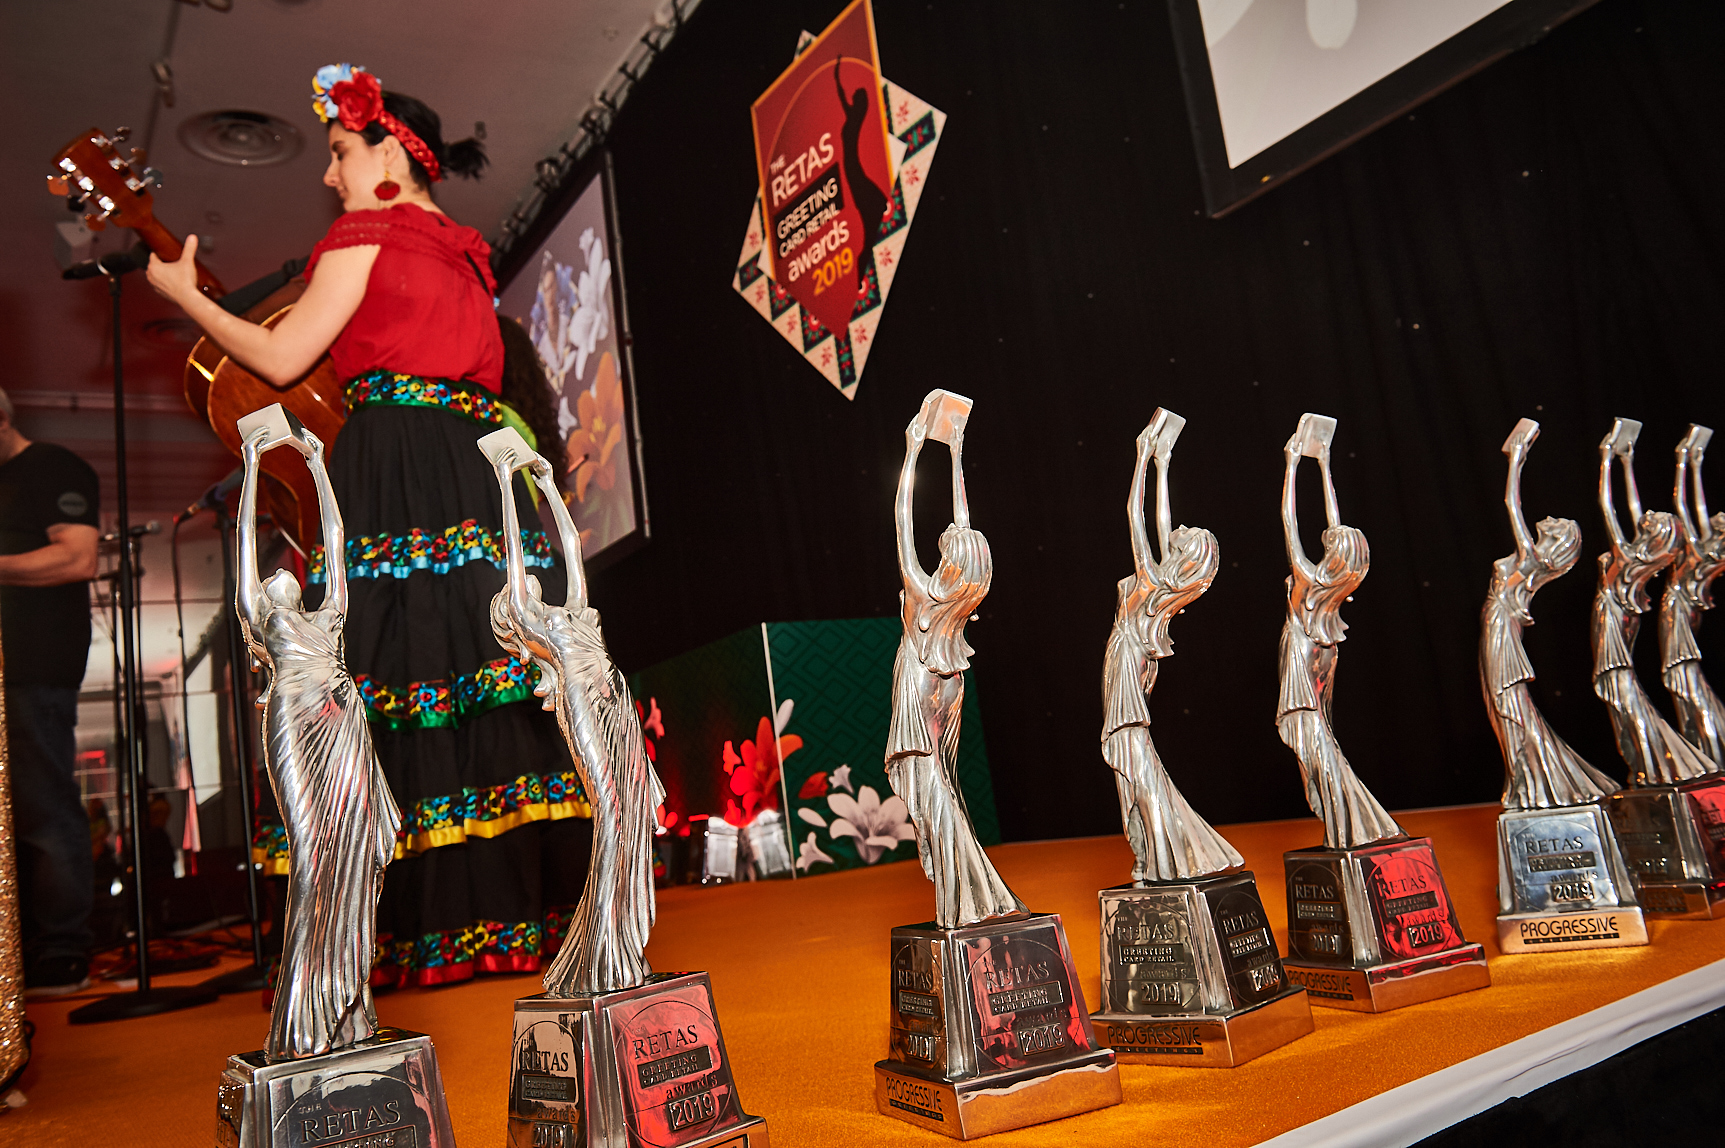 Above: Which retailers' names will be on The Retas' trophies this year?